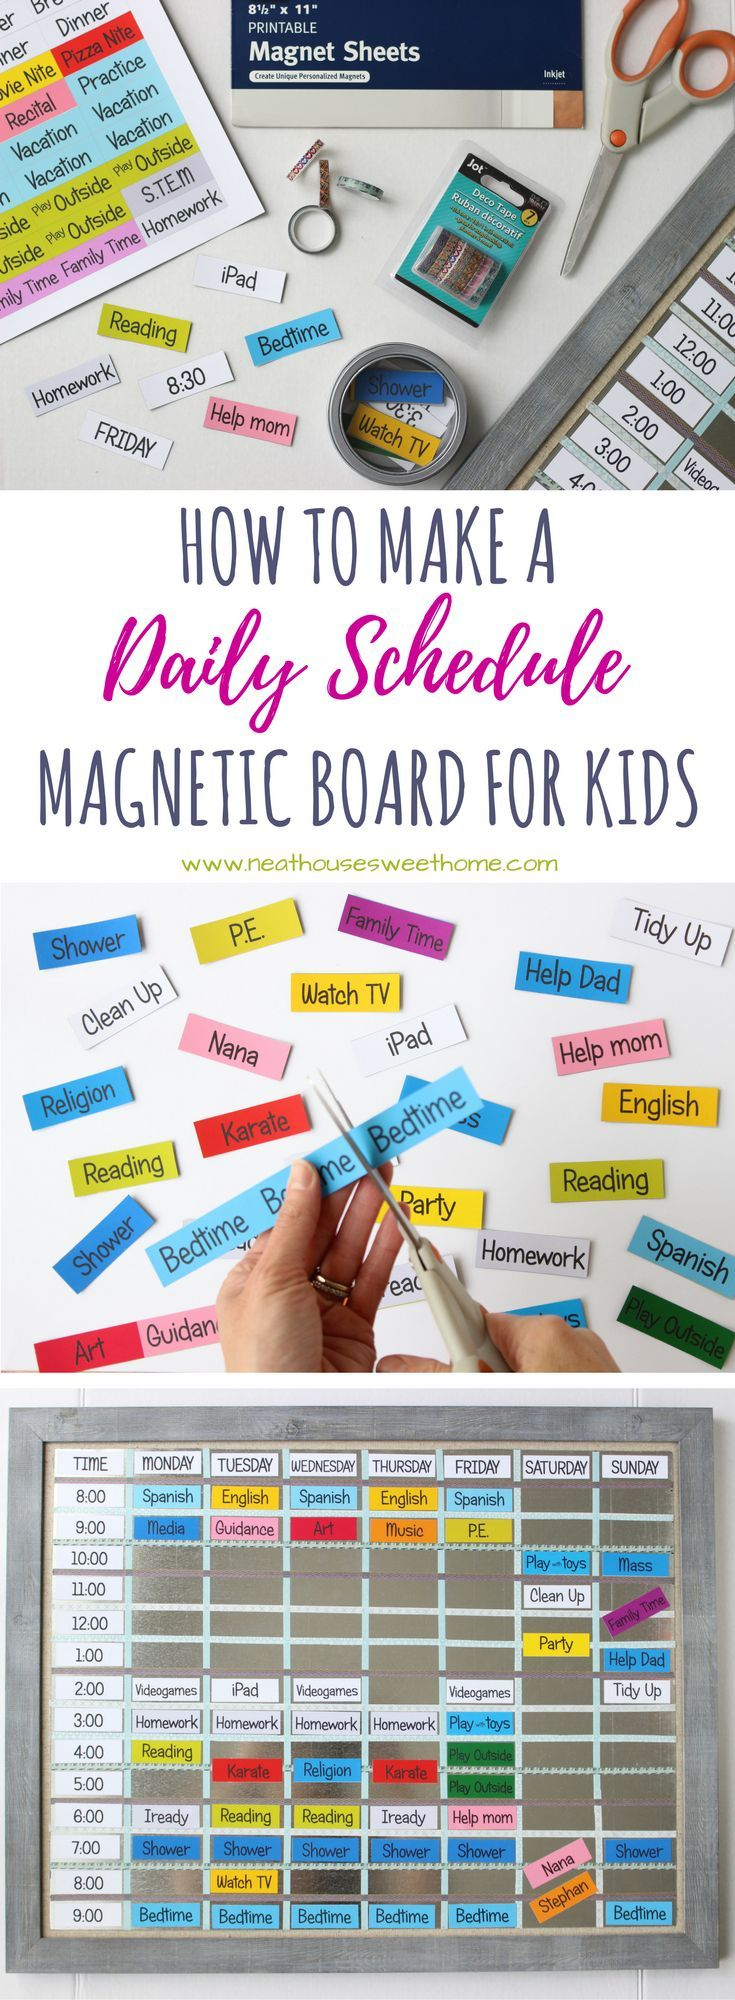 Teach your kids time management with this quick and inexpensive DIY magnetic board schedule. Print at home on magnetic sheets and get organized today! via @flaviablogger